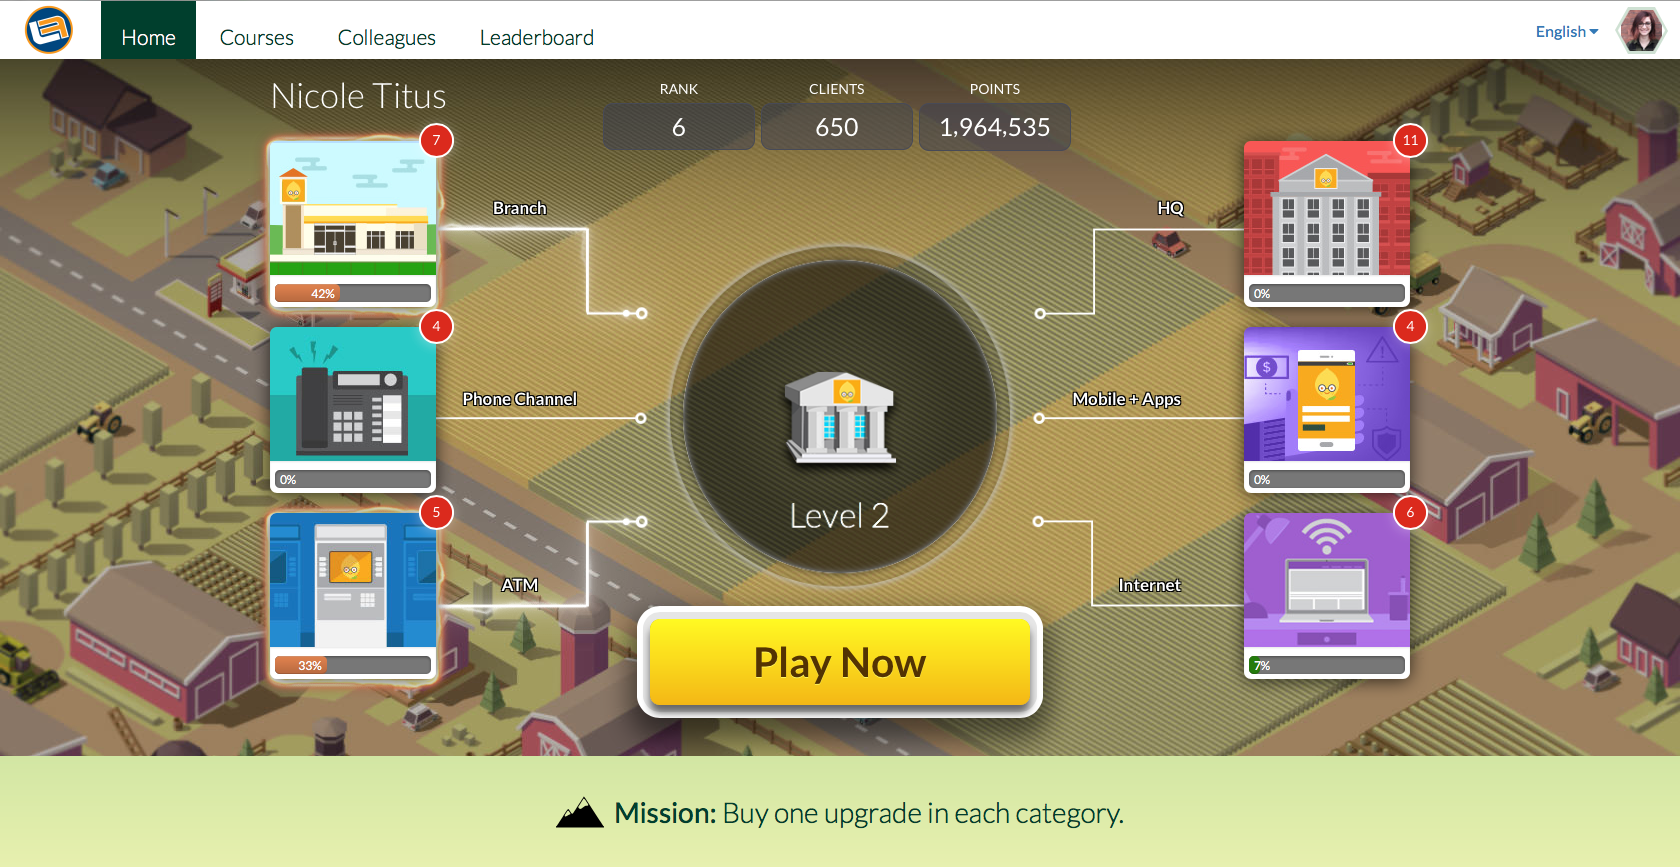 Gamified learning